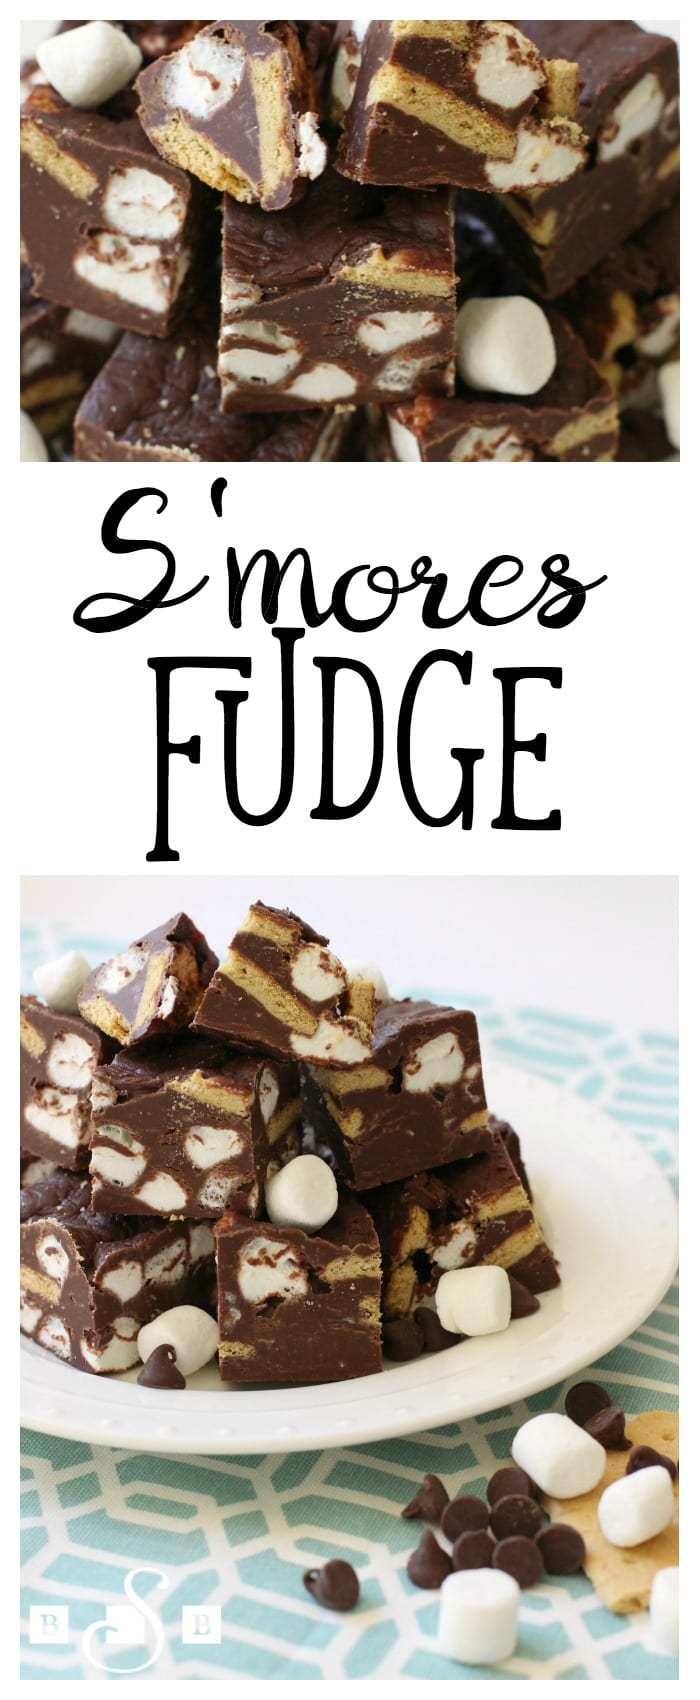 I love s'mores so when I found this simple recipe for fudge, I knew I had to try it. It's so easy to make and I love the delicious s'mores flavor! I like to cut it up in small, bite-sized pieces, since it's pretty rich.